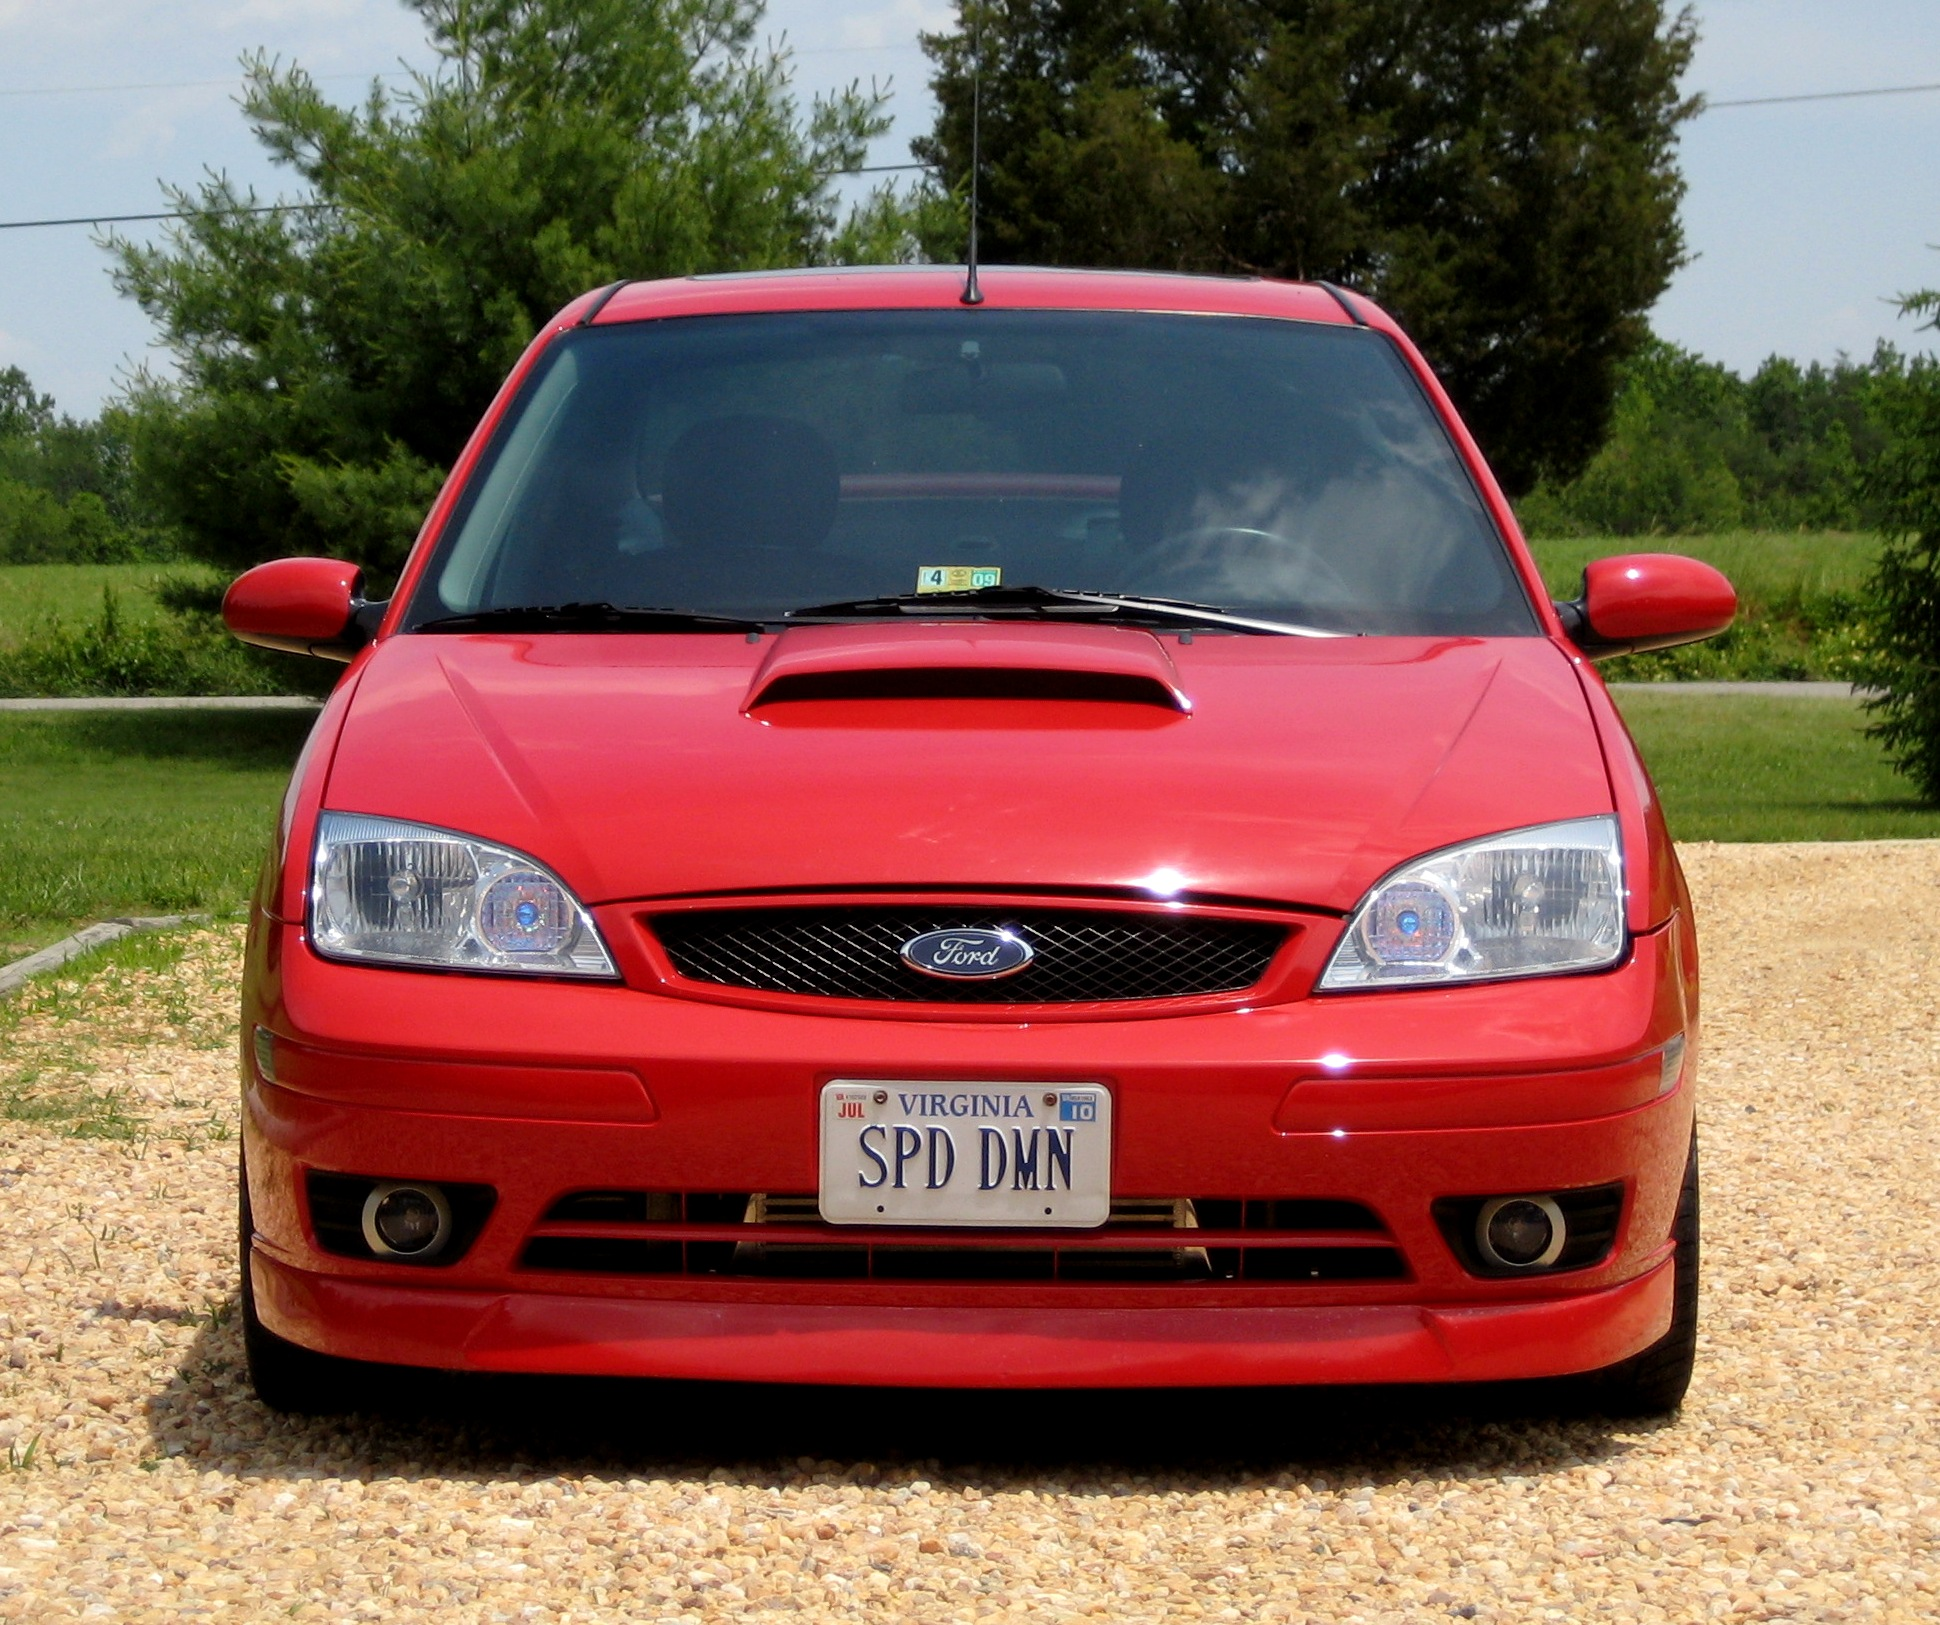 2005 ford focus st turbo 1 8 mile drag racing timeslip 0 60. Black Bedroom Furniture Sets. Home Design Ideas